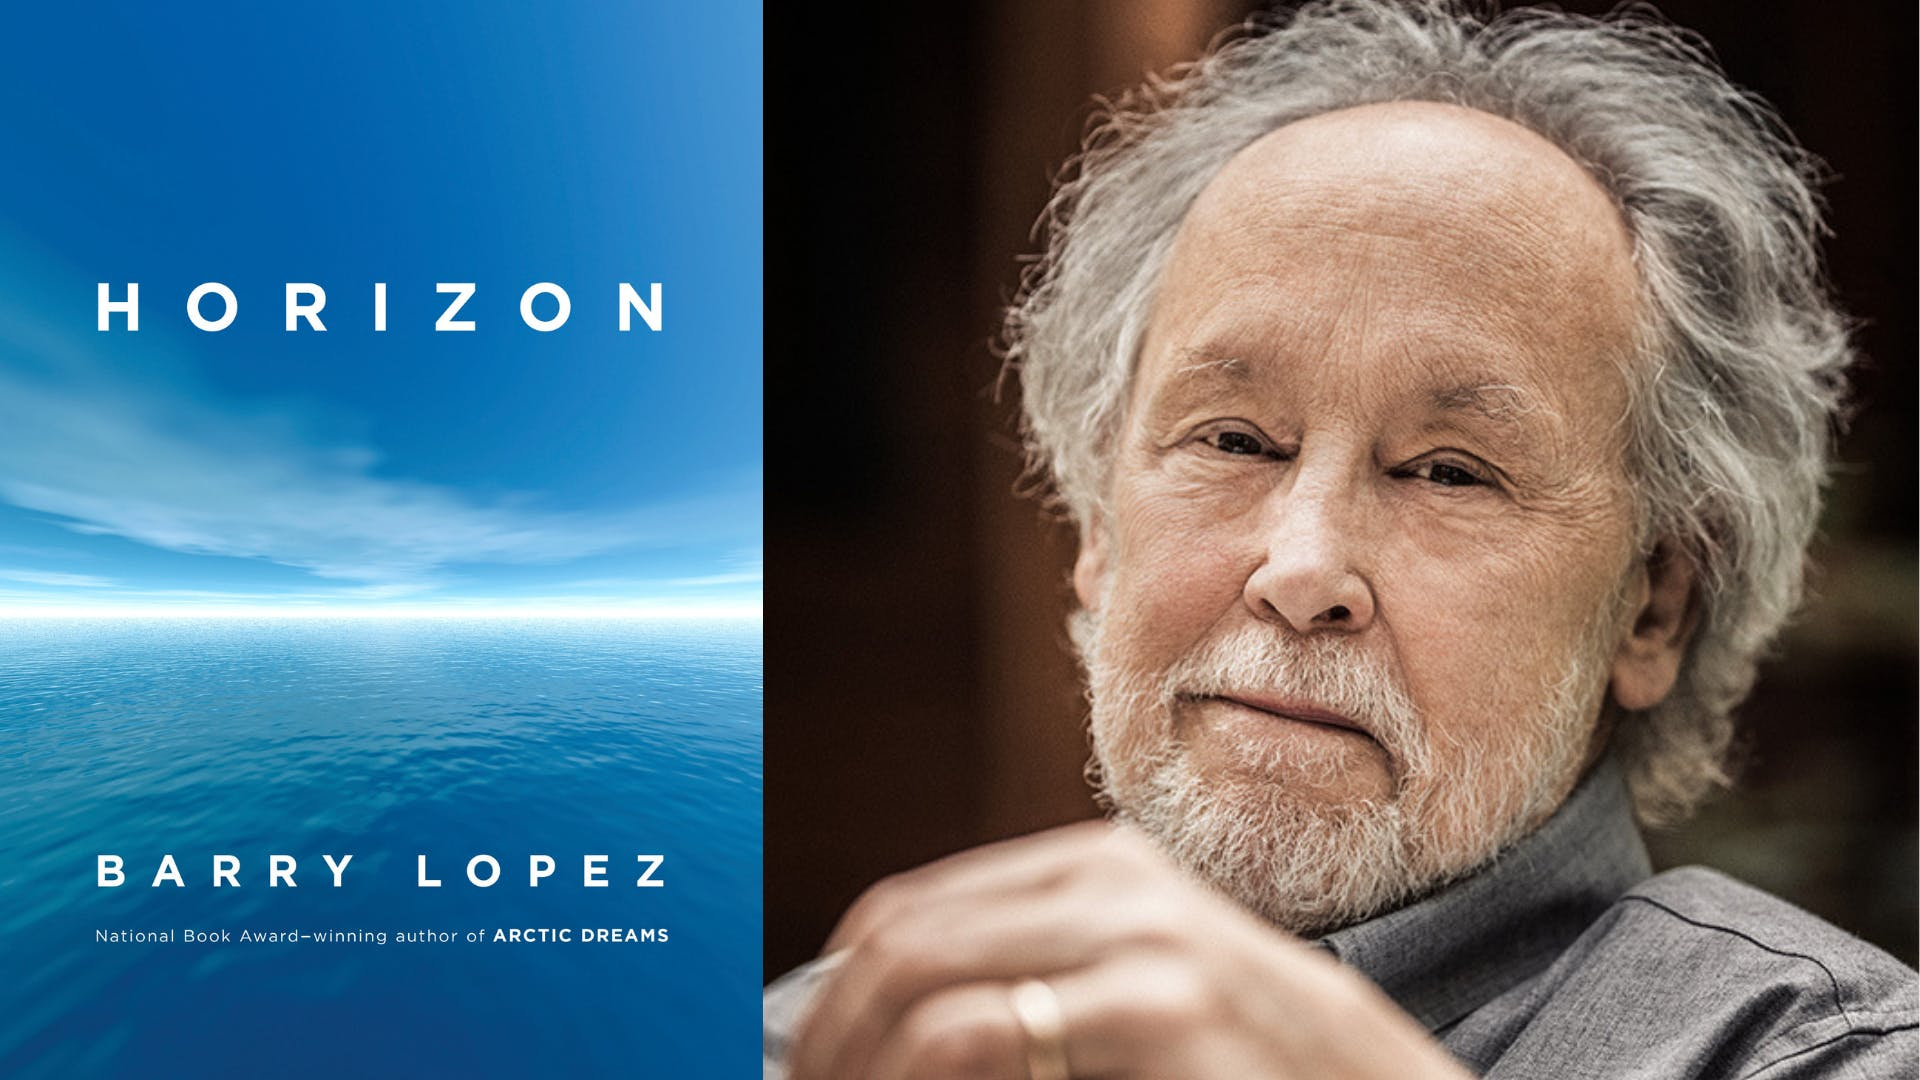 Barry Lopez: Quests and Horizons